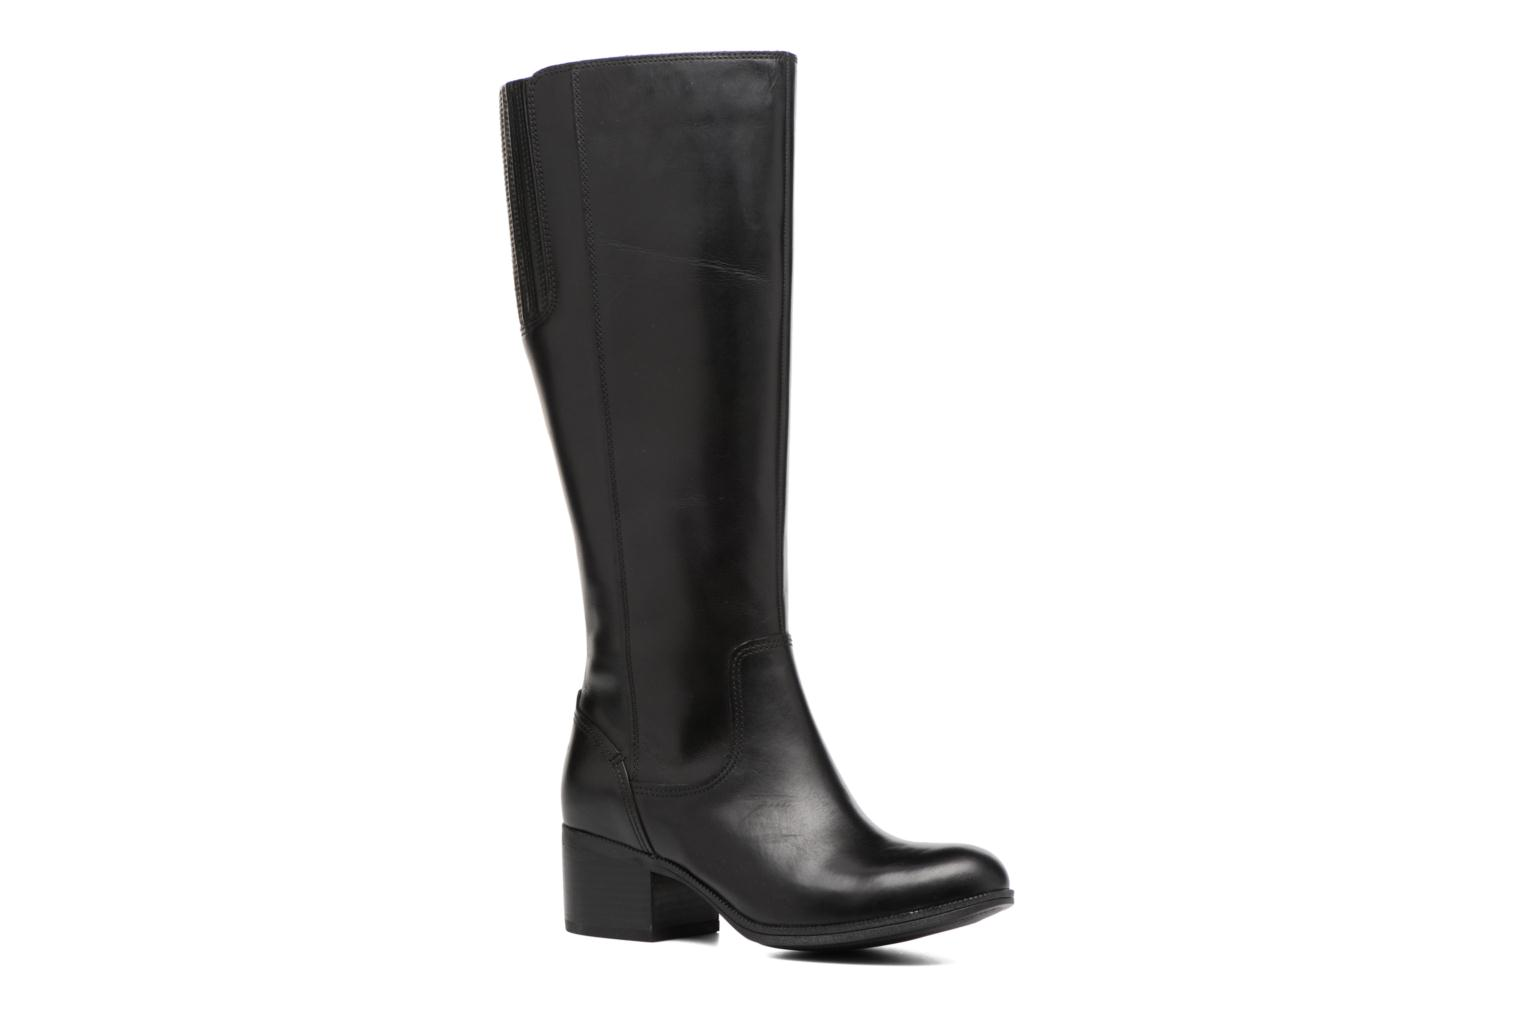 Marques Chaussure femme Clarks femme Maypearl Viola Black leather